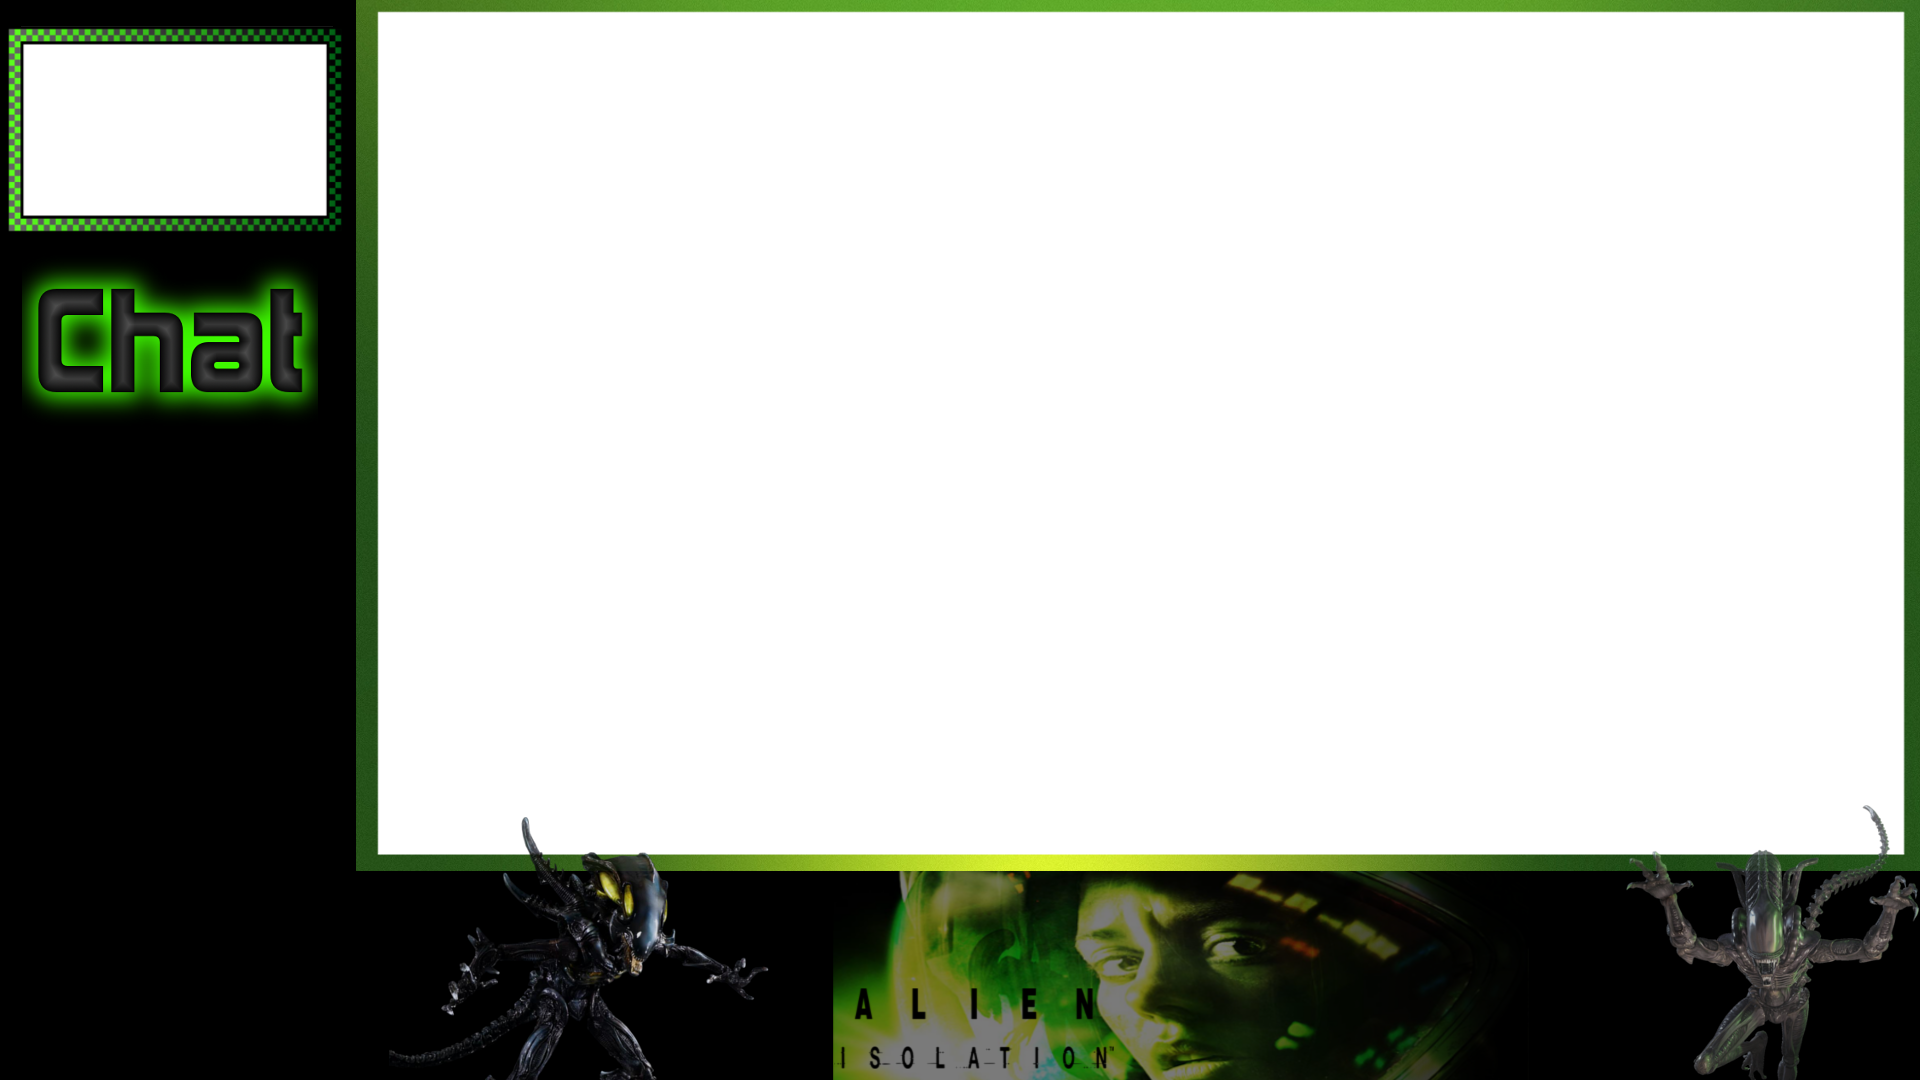 Free photo png frames overlayment. Alien isolation twitch overlay